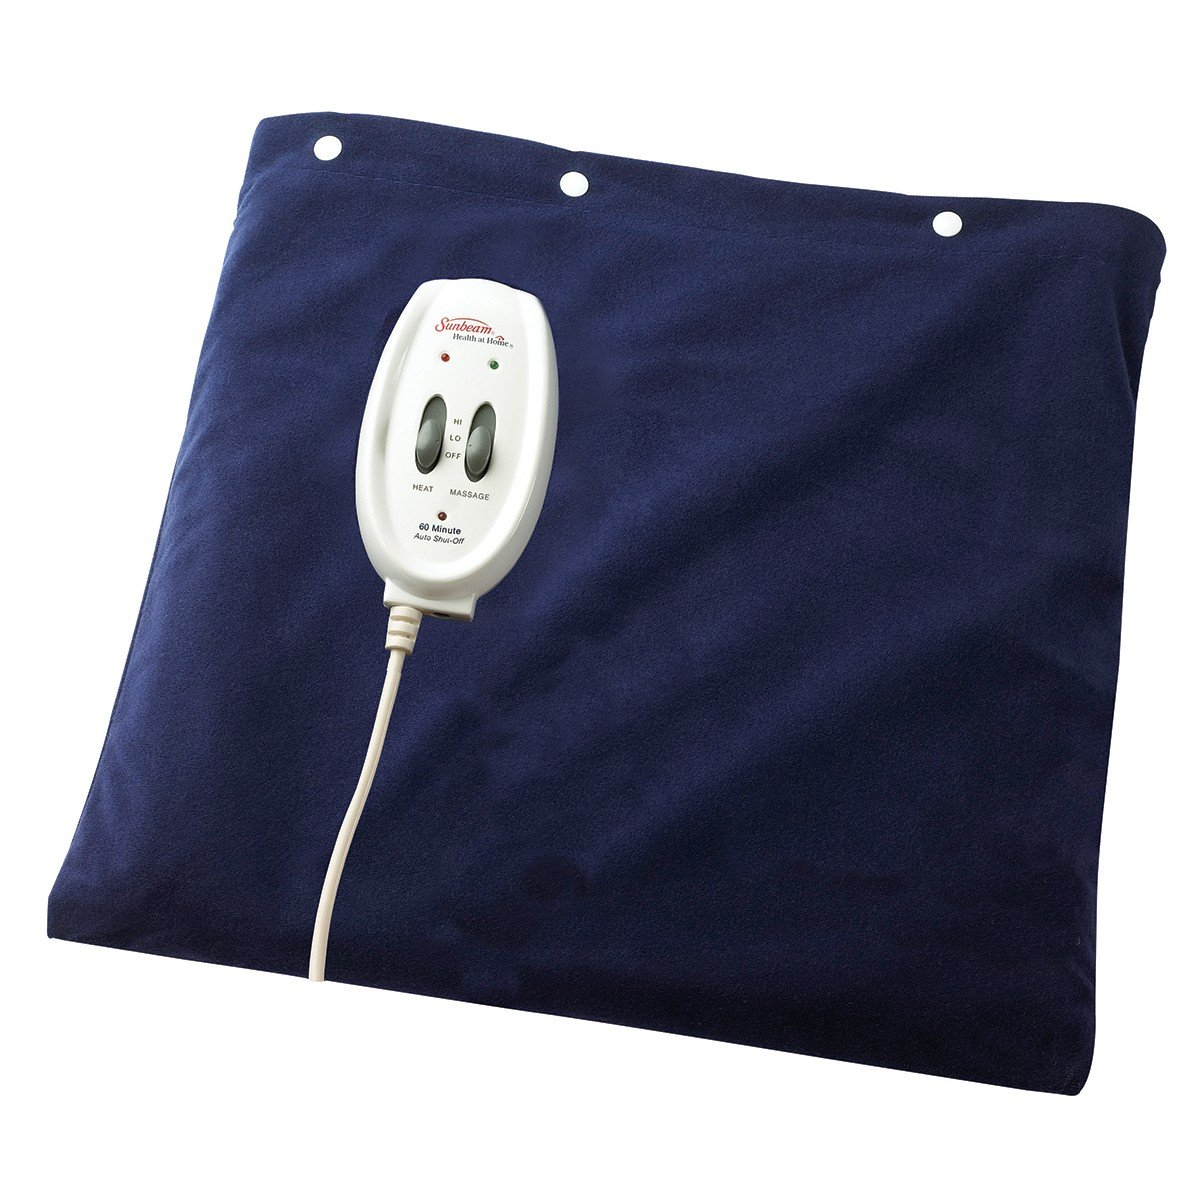 For facial heating pad excited